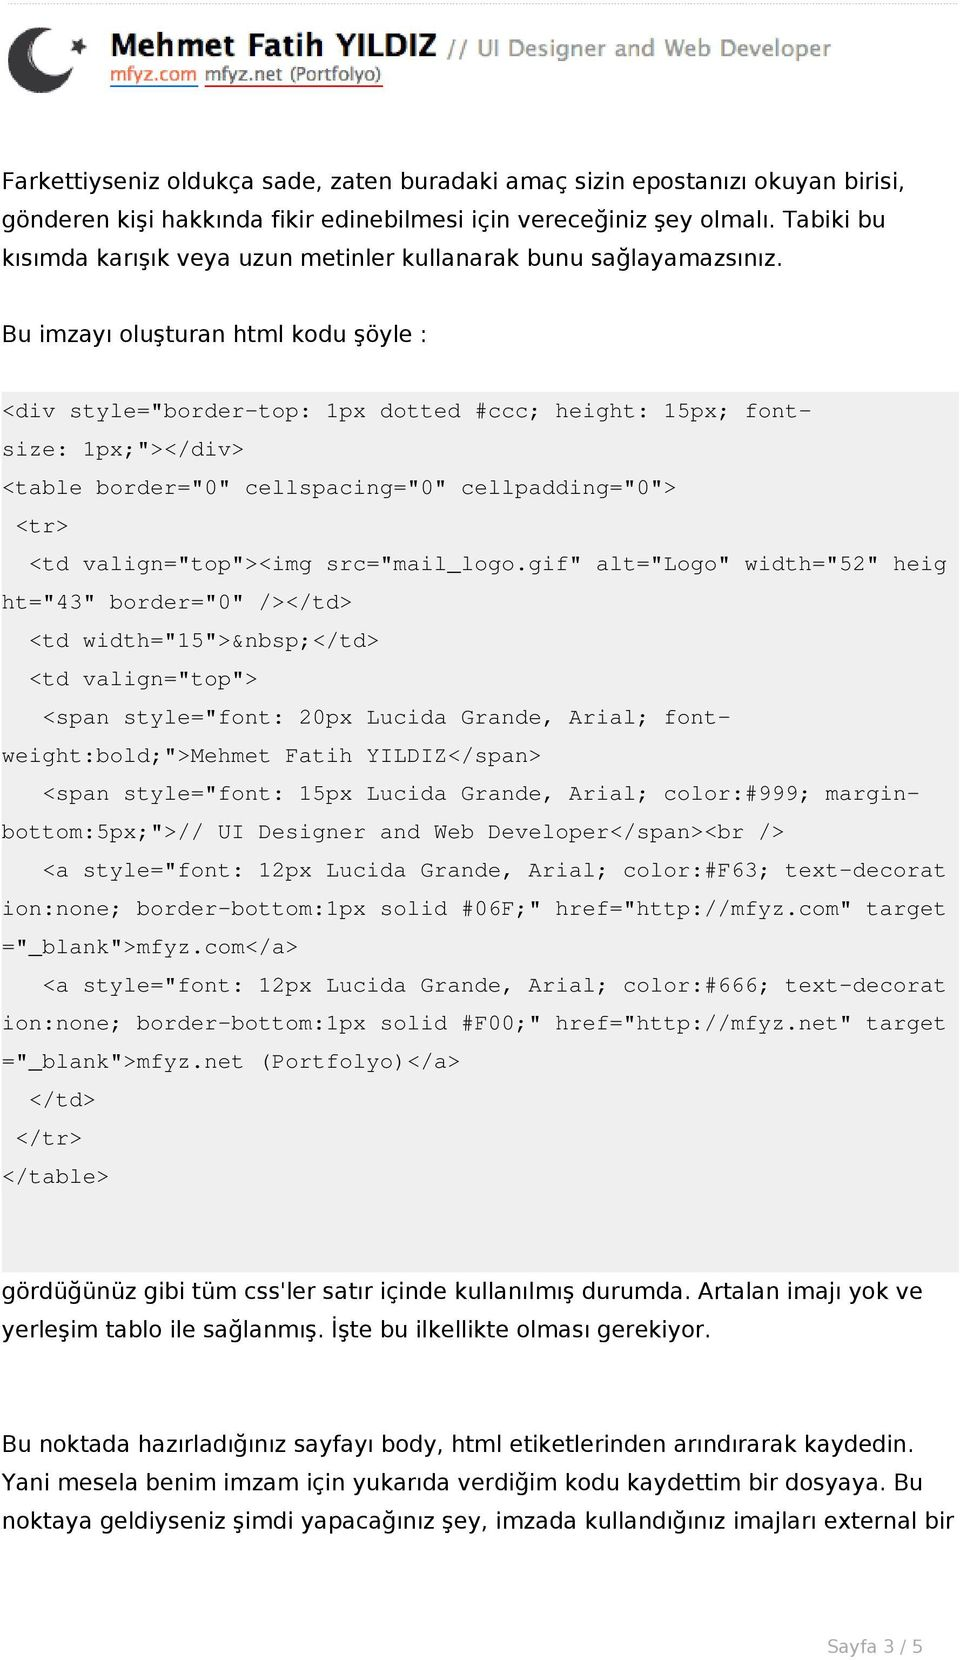 "Bu imzayı oluşturan html kodu şöyle : <div style=""border-top: 1px dotted #ccc; height: 15px; fontsize: 1px;""></div> <table border=""0"" cellspacing=""0"" cellpadding=""0""> <tr> <td valign=""top""><img"